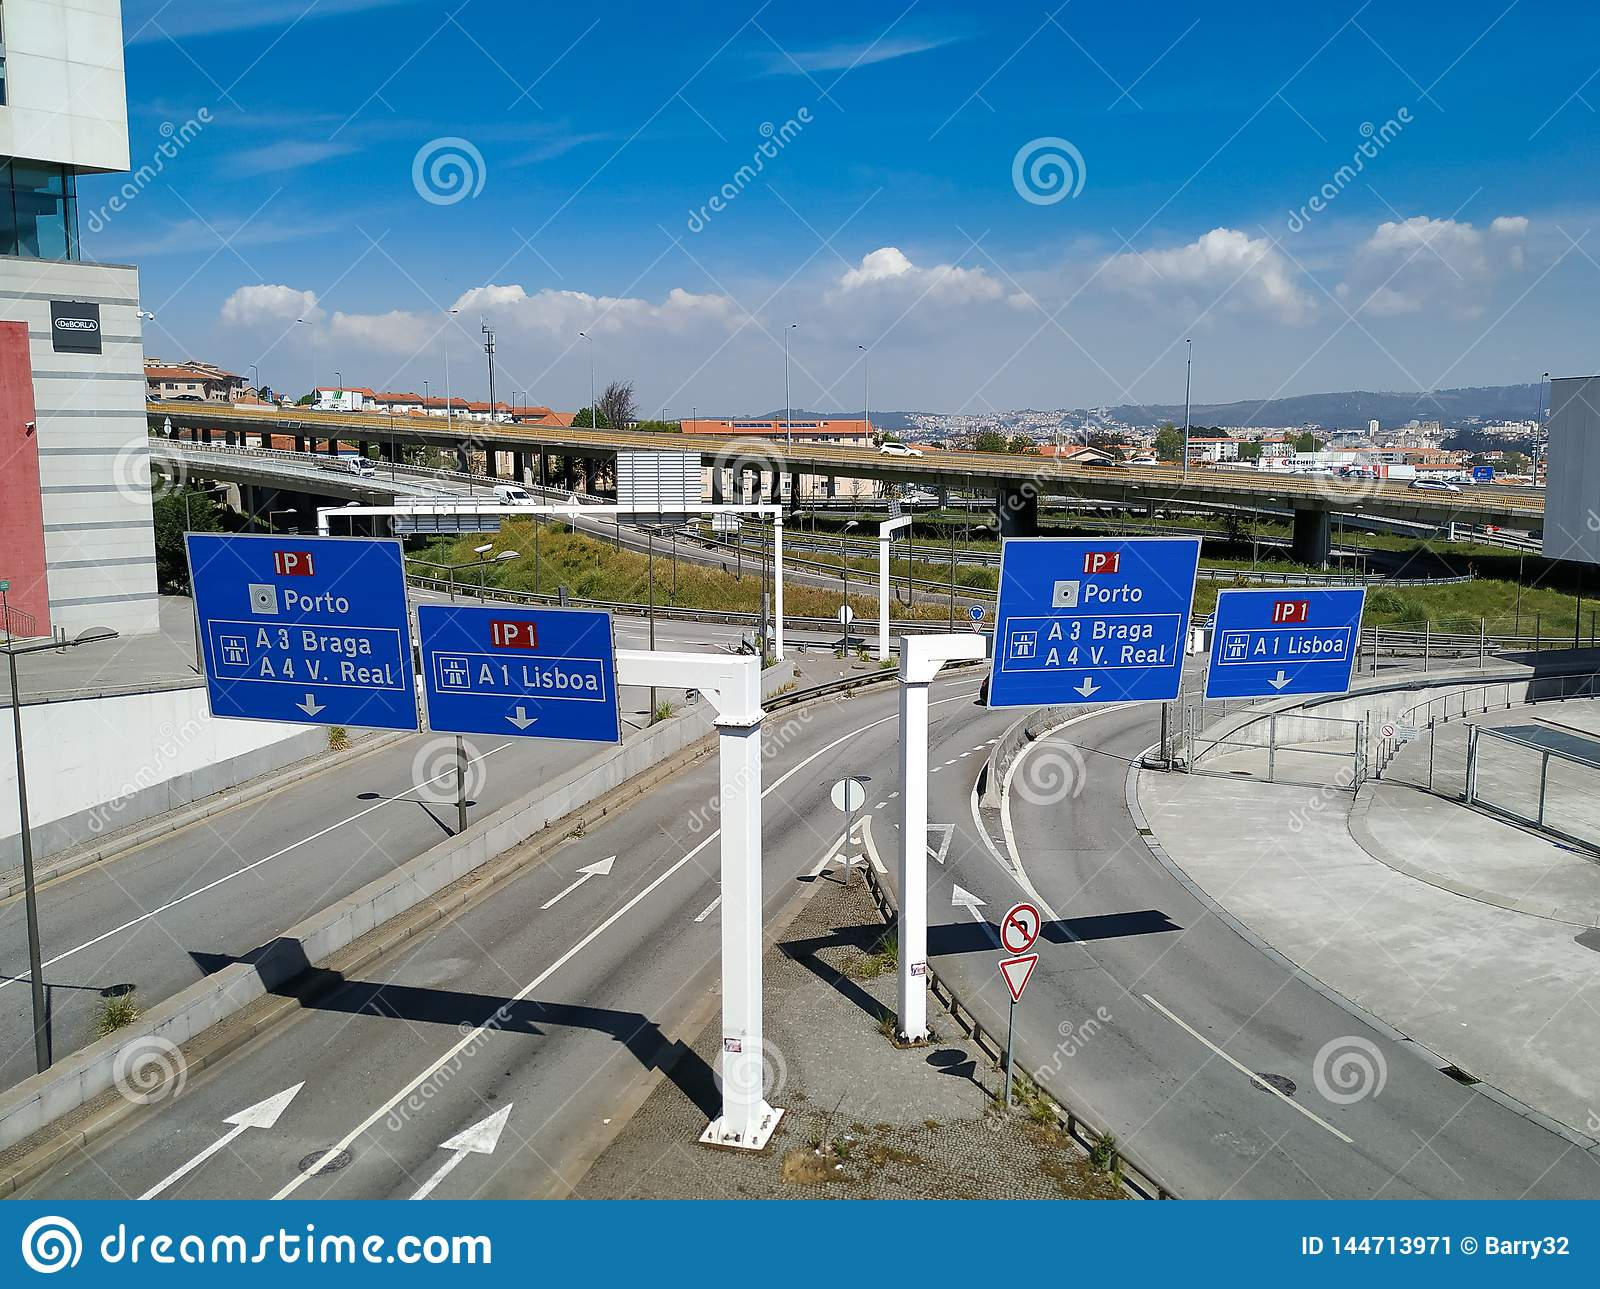 Entrance to principal IP1 motorway in Portugal, which connects Algarve to the North